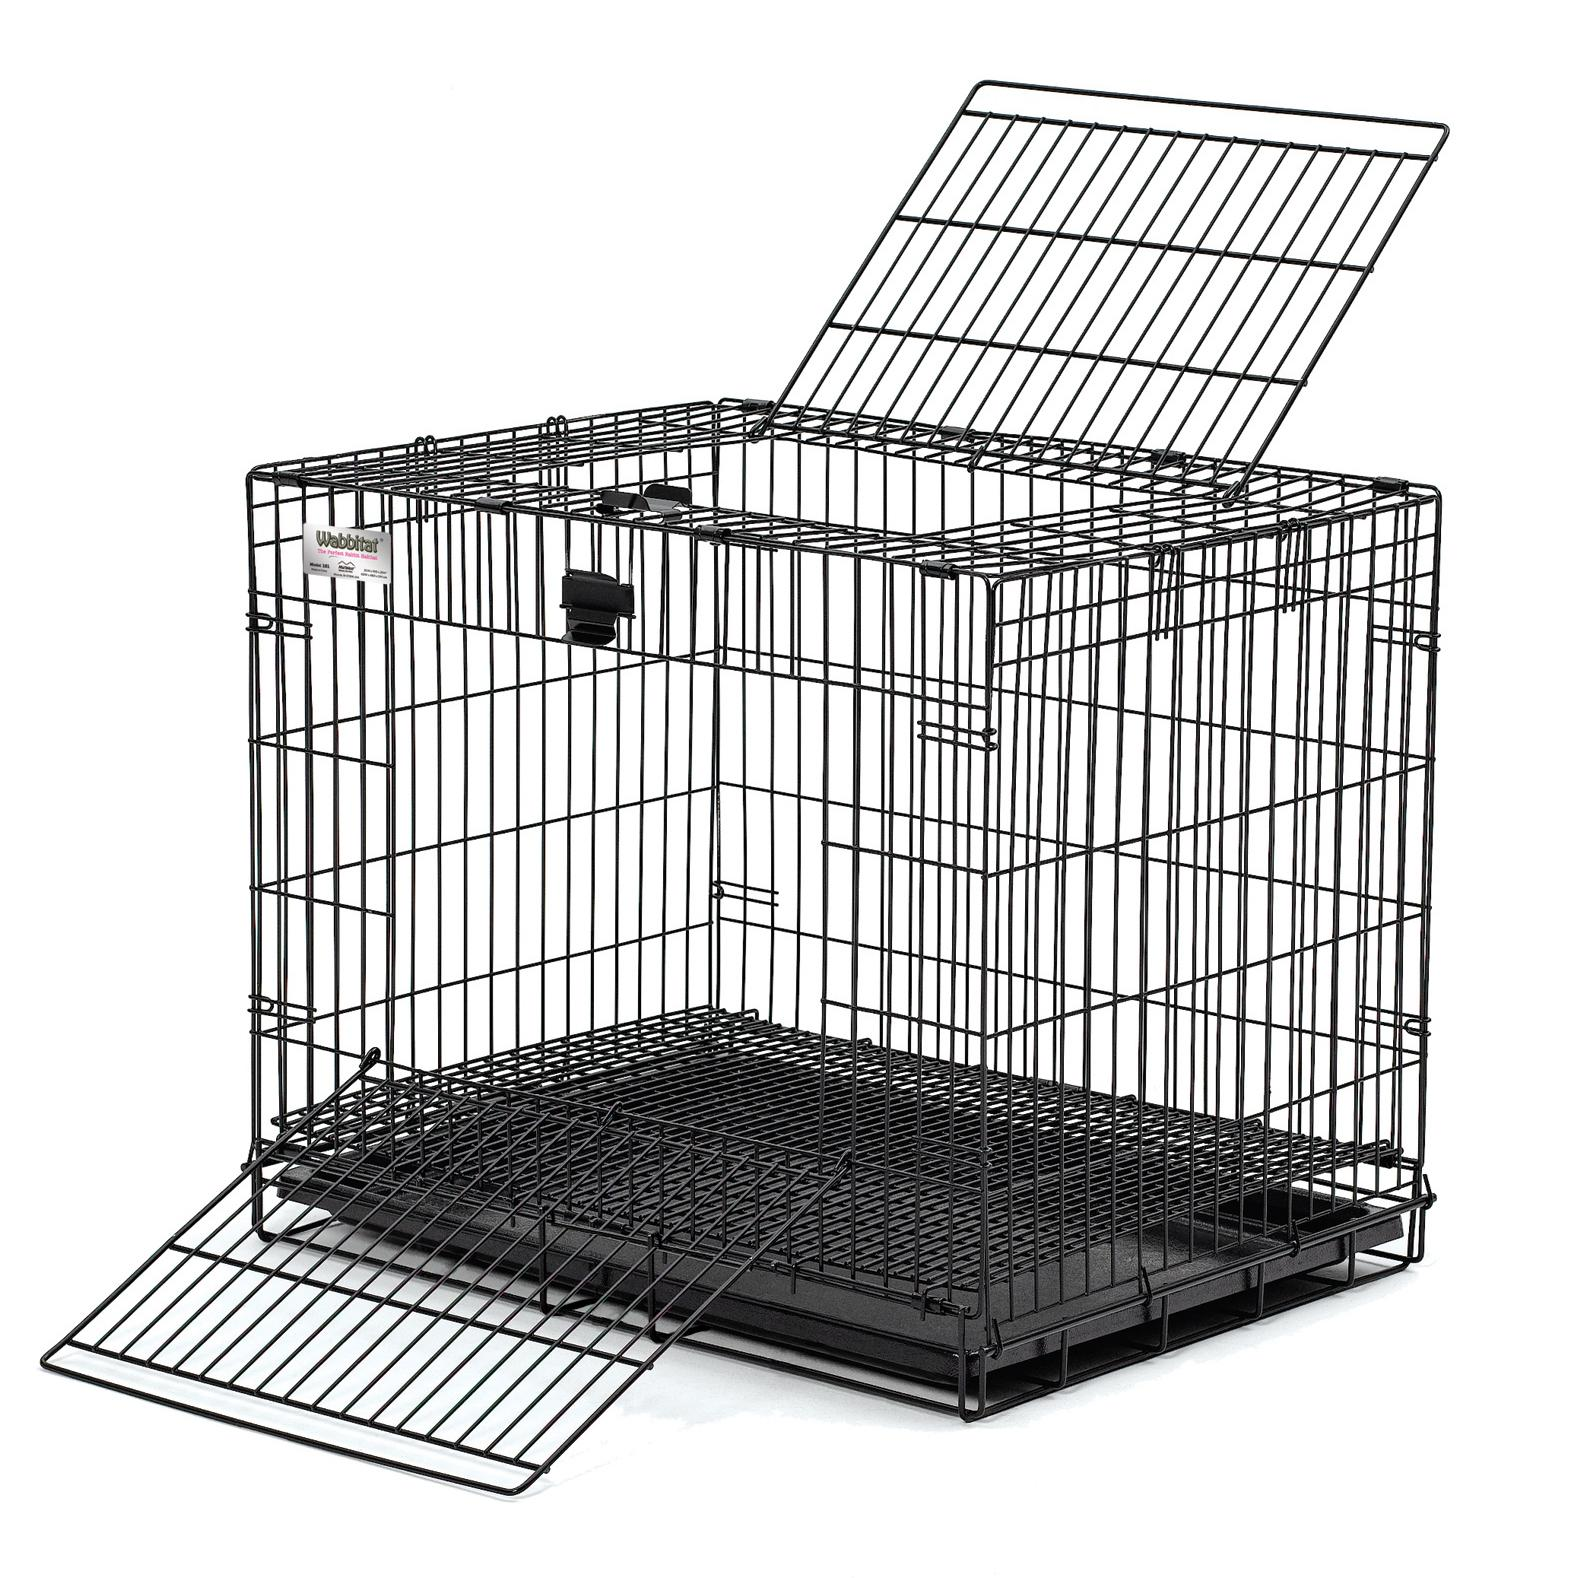 vector royalty free Midwest wabbitat folding . Cage clipart rabbit cage